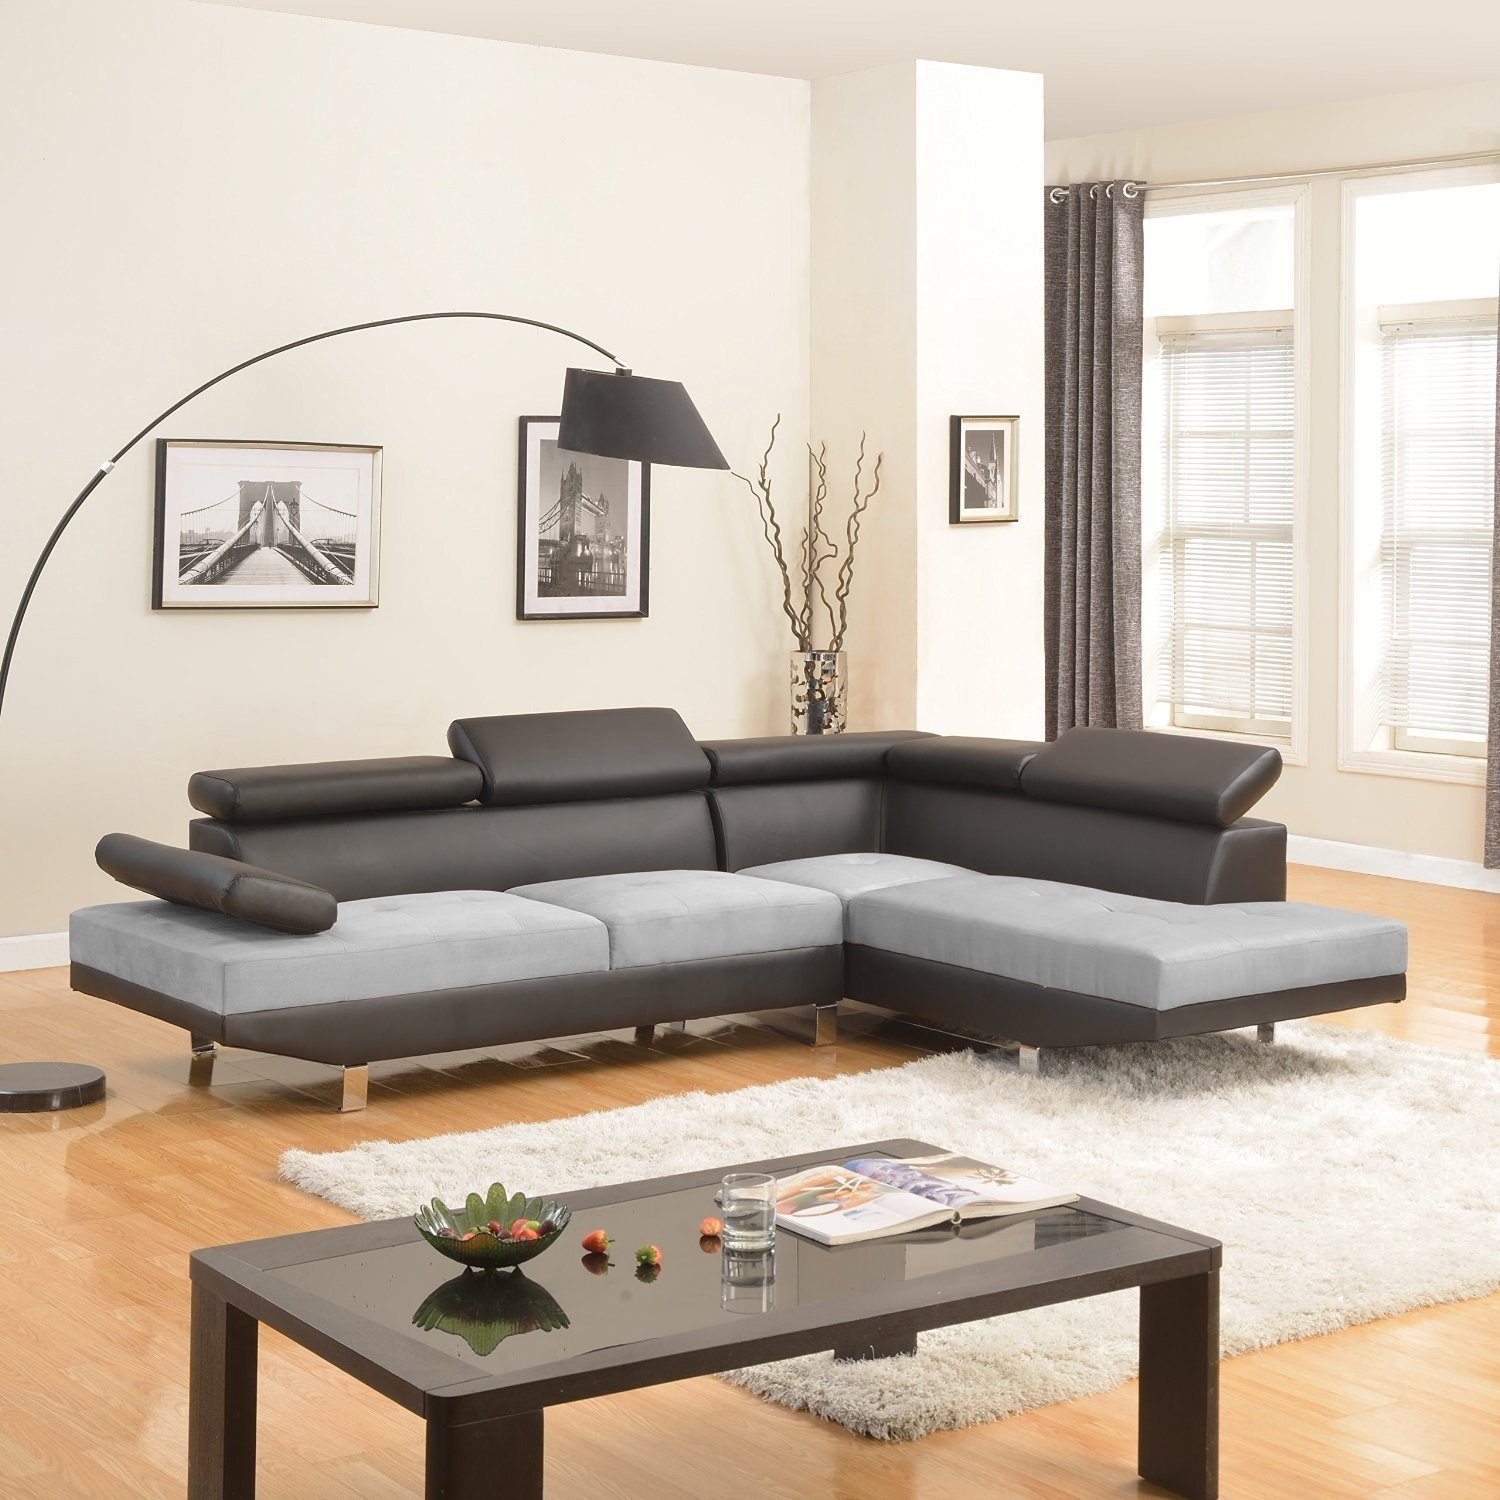 Awe Inspiring Details About Modern Contemporary Design 2 Tone Microfiber Bonded Leather Sectional Sofa Black Evergreenethics Interior Chair Design Evergreenethicsorg